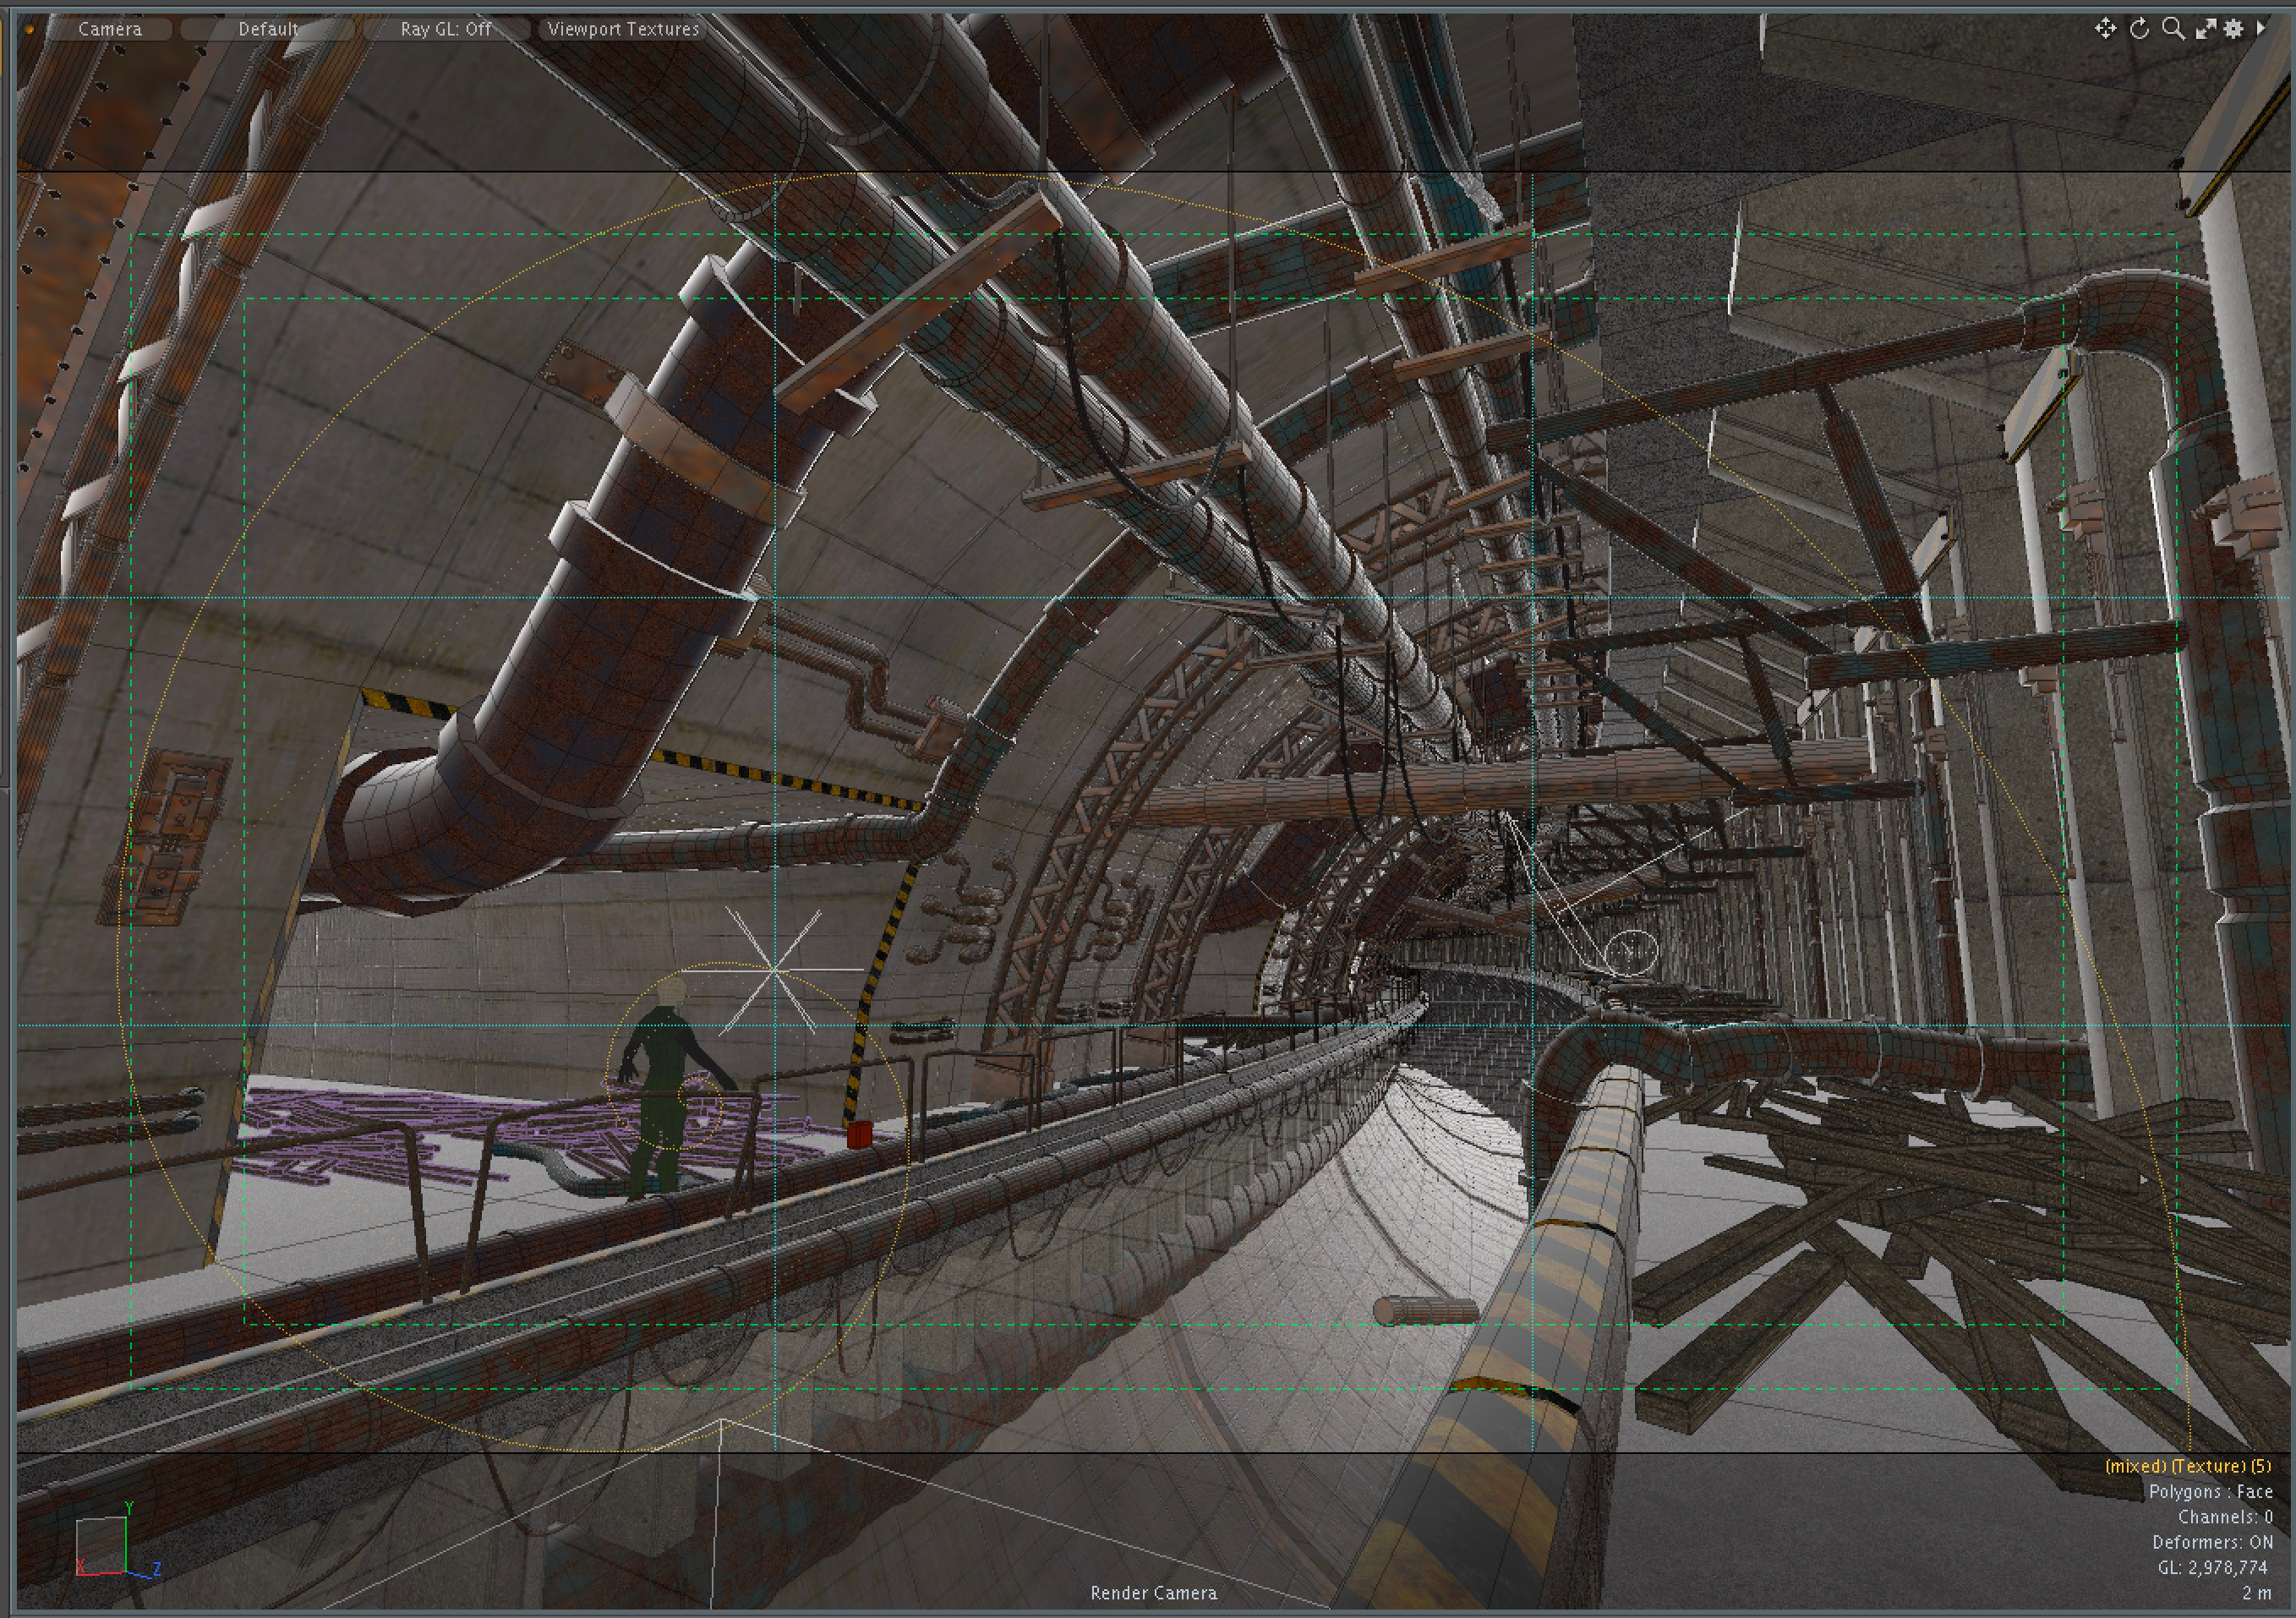 The scene was entirely constructed in Modo, with a bit of help from the model bashing kit. A lot of the objects were repeating elements which were later combined and bent to create the tunnel shape.